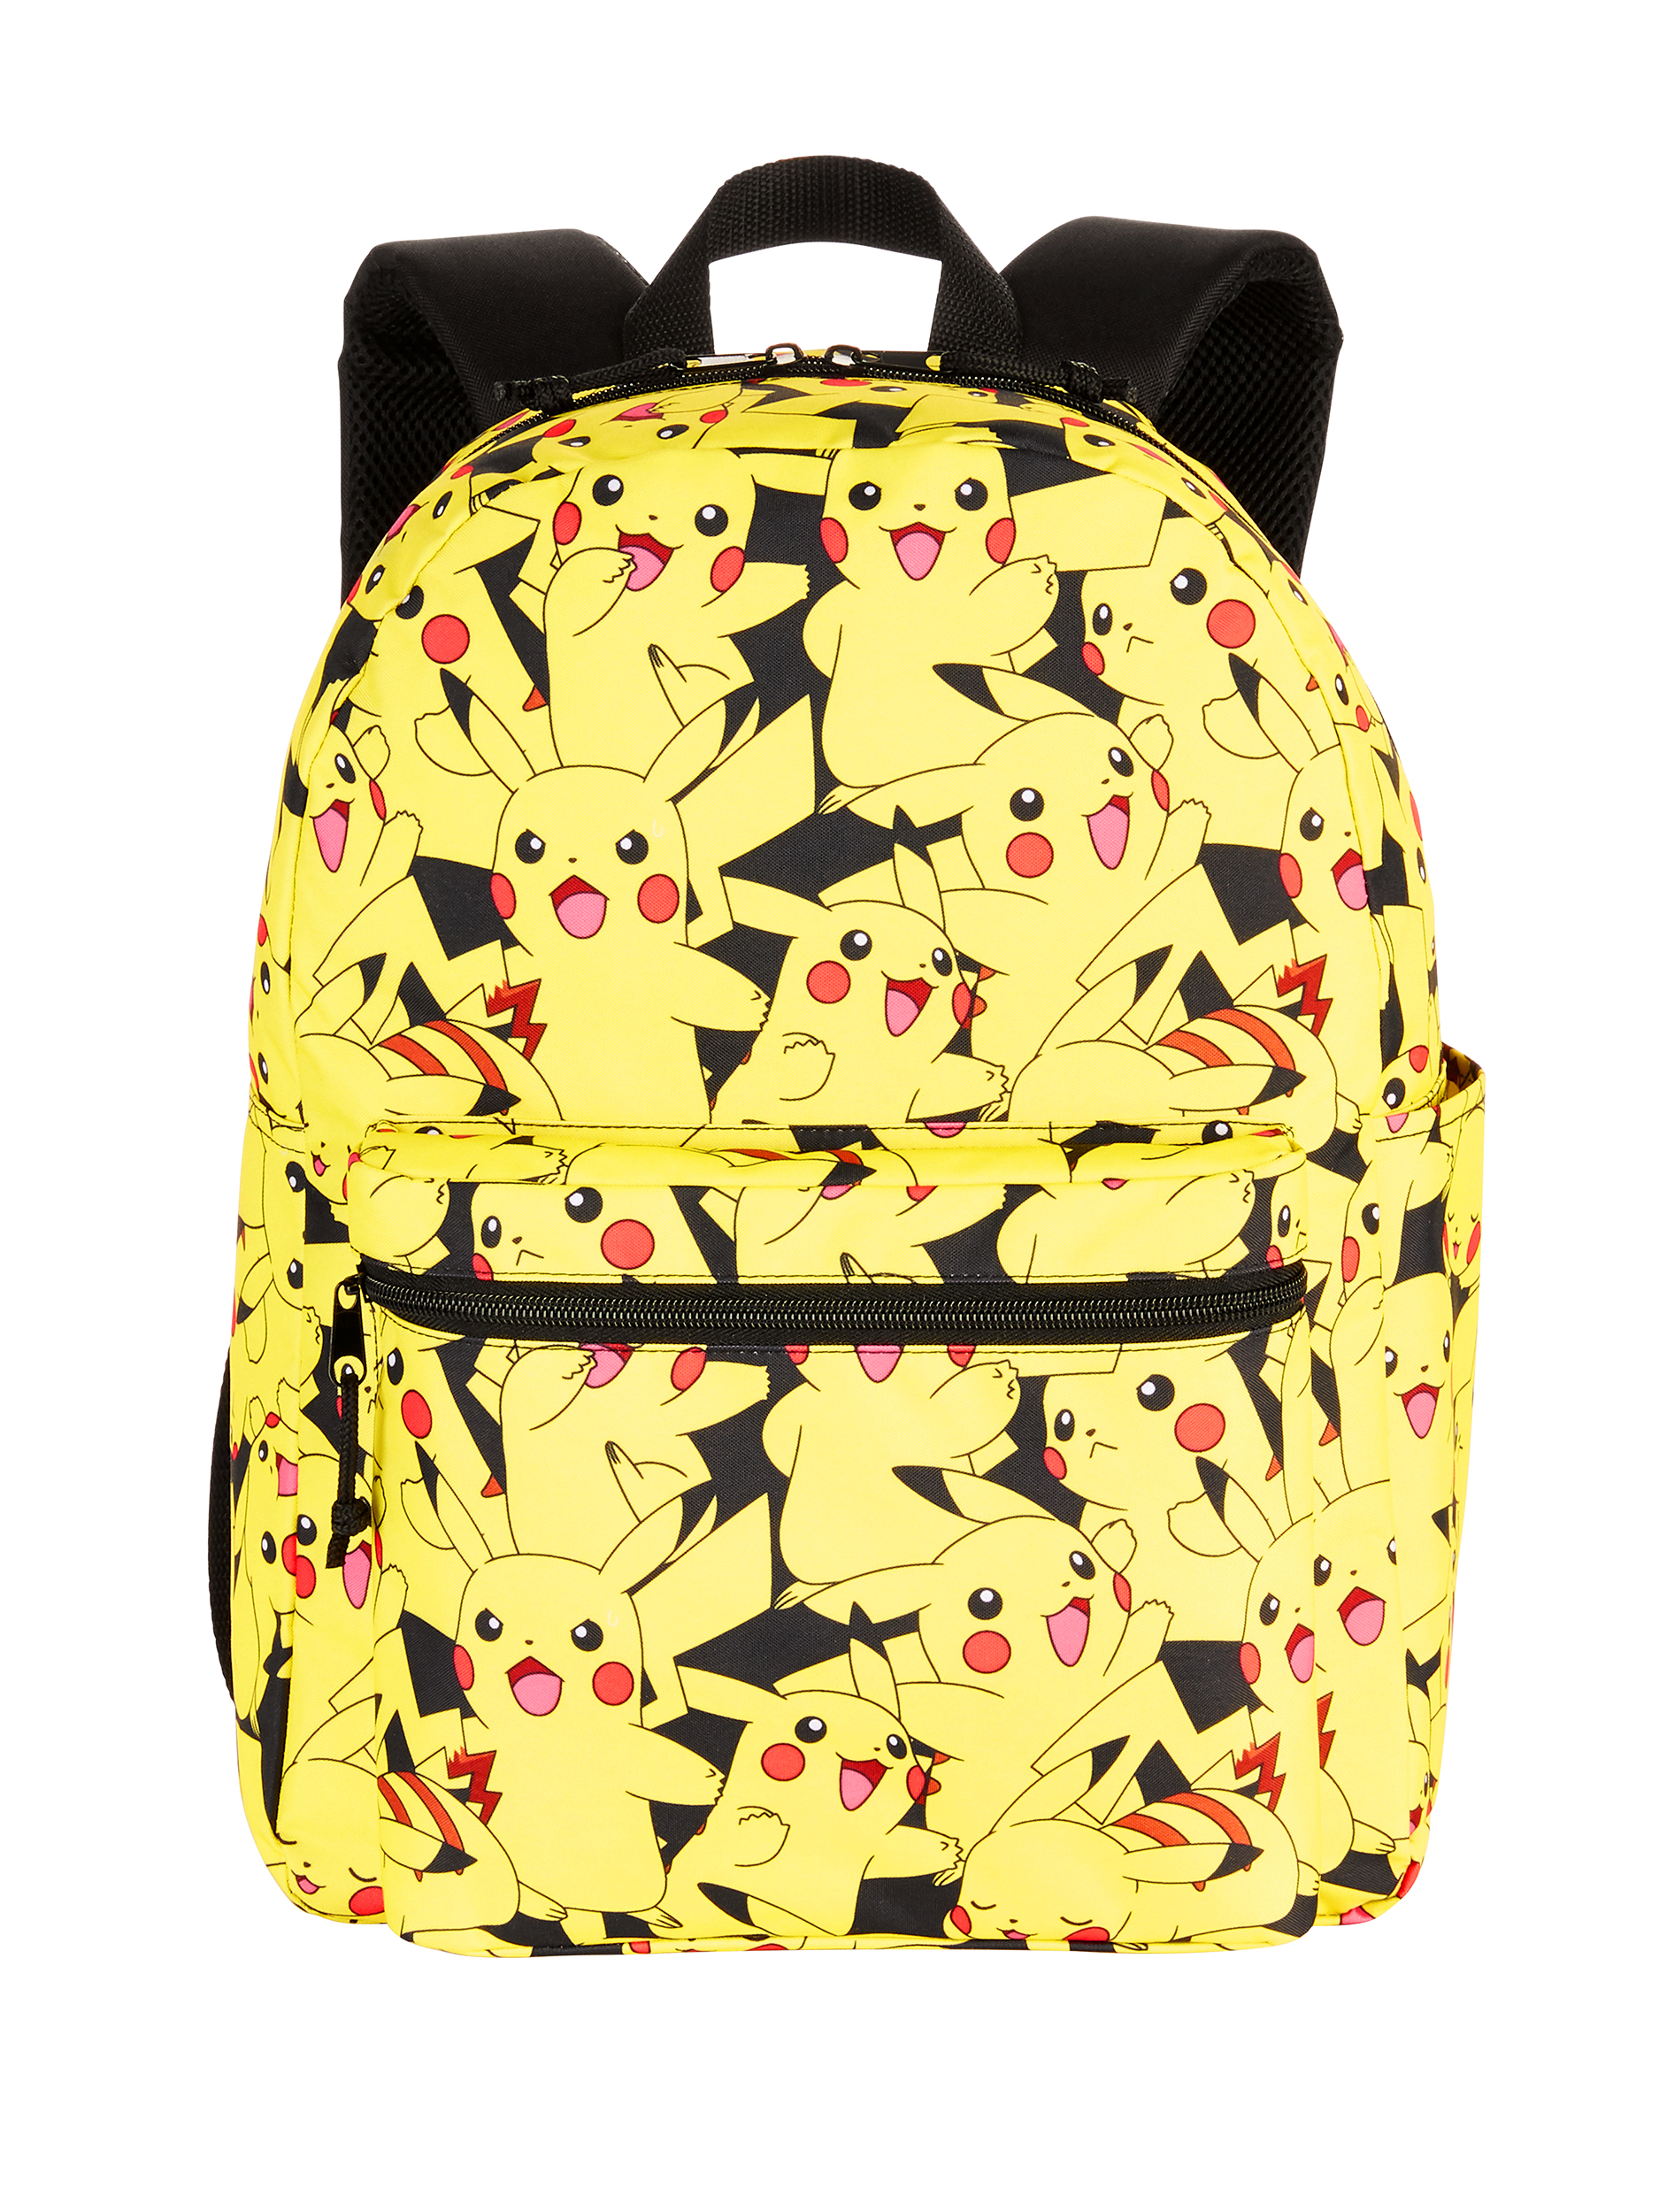 "Pokemon Backpack 16/"" Large School Backpack Book Bag"